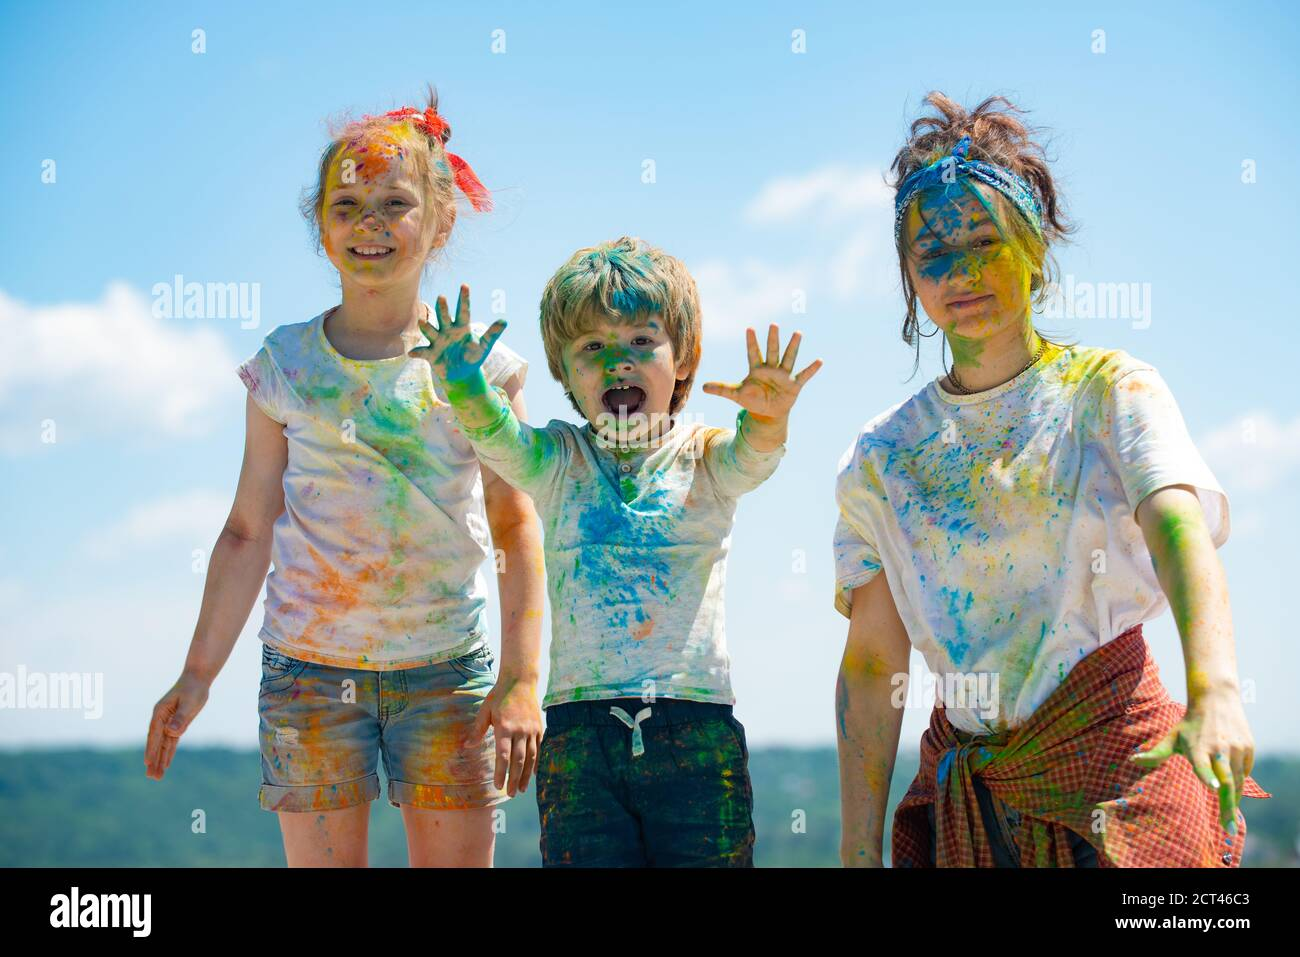 Cheerful kids showing her hands painted in bright colors. Colorful faces, color splash, coloured powder on children body. Stock Photo